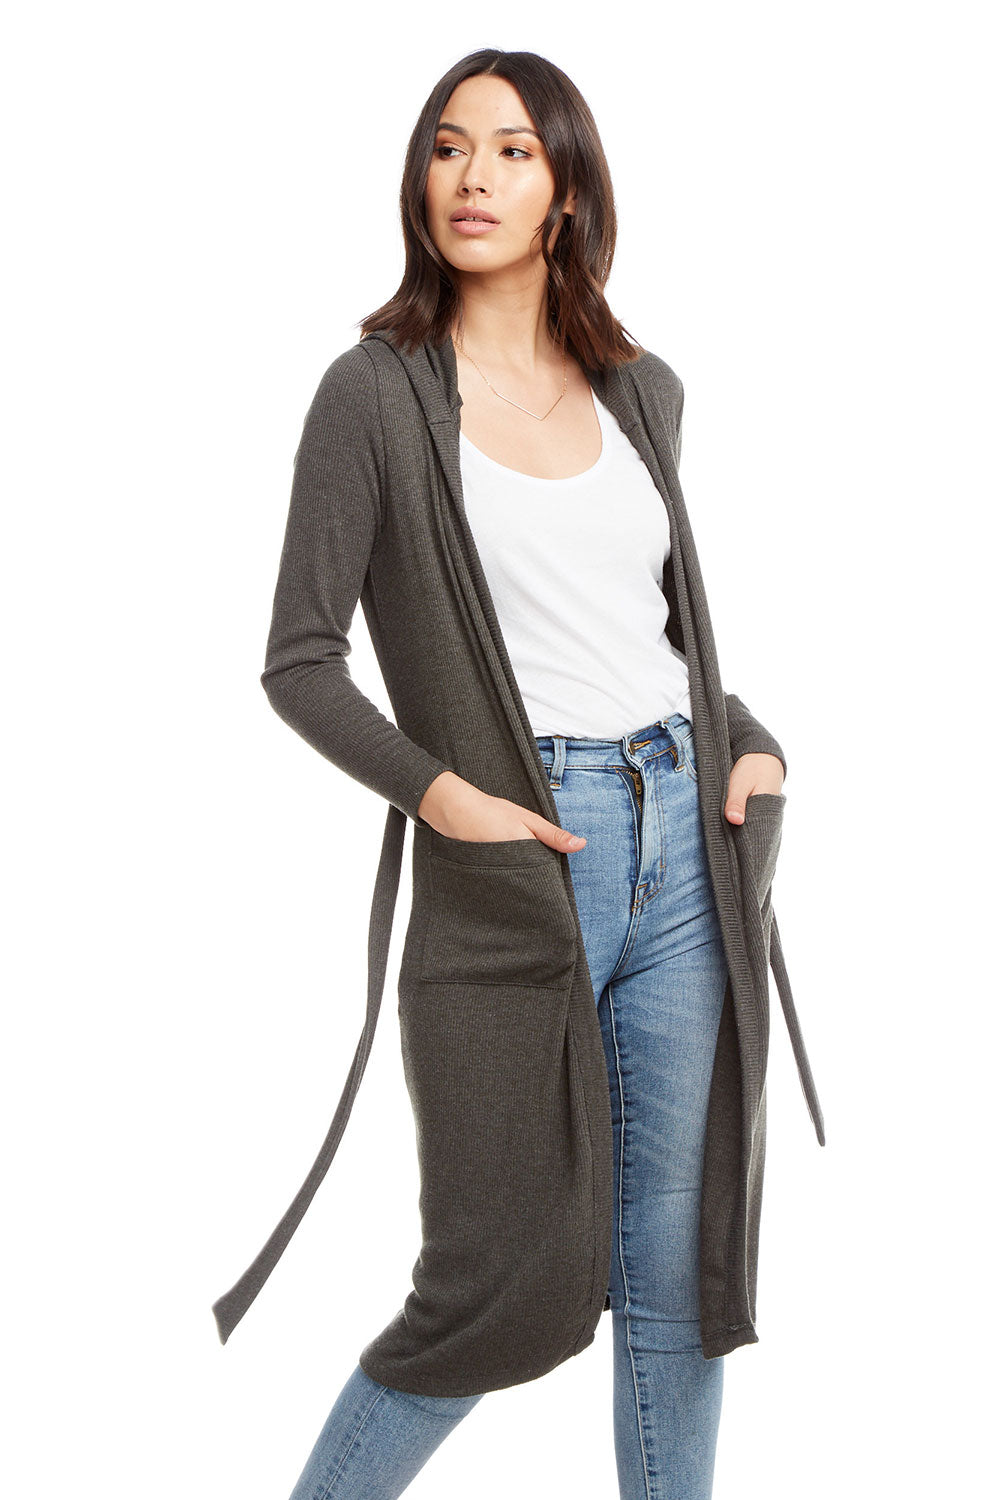 Cozy Rib Long Sleeve Open Hooded Duster with Belt WOMENS chaserbrand4.myshopify.com